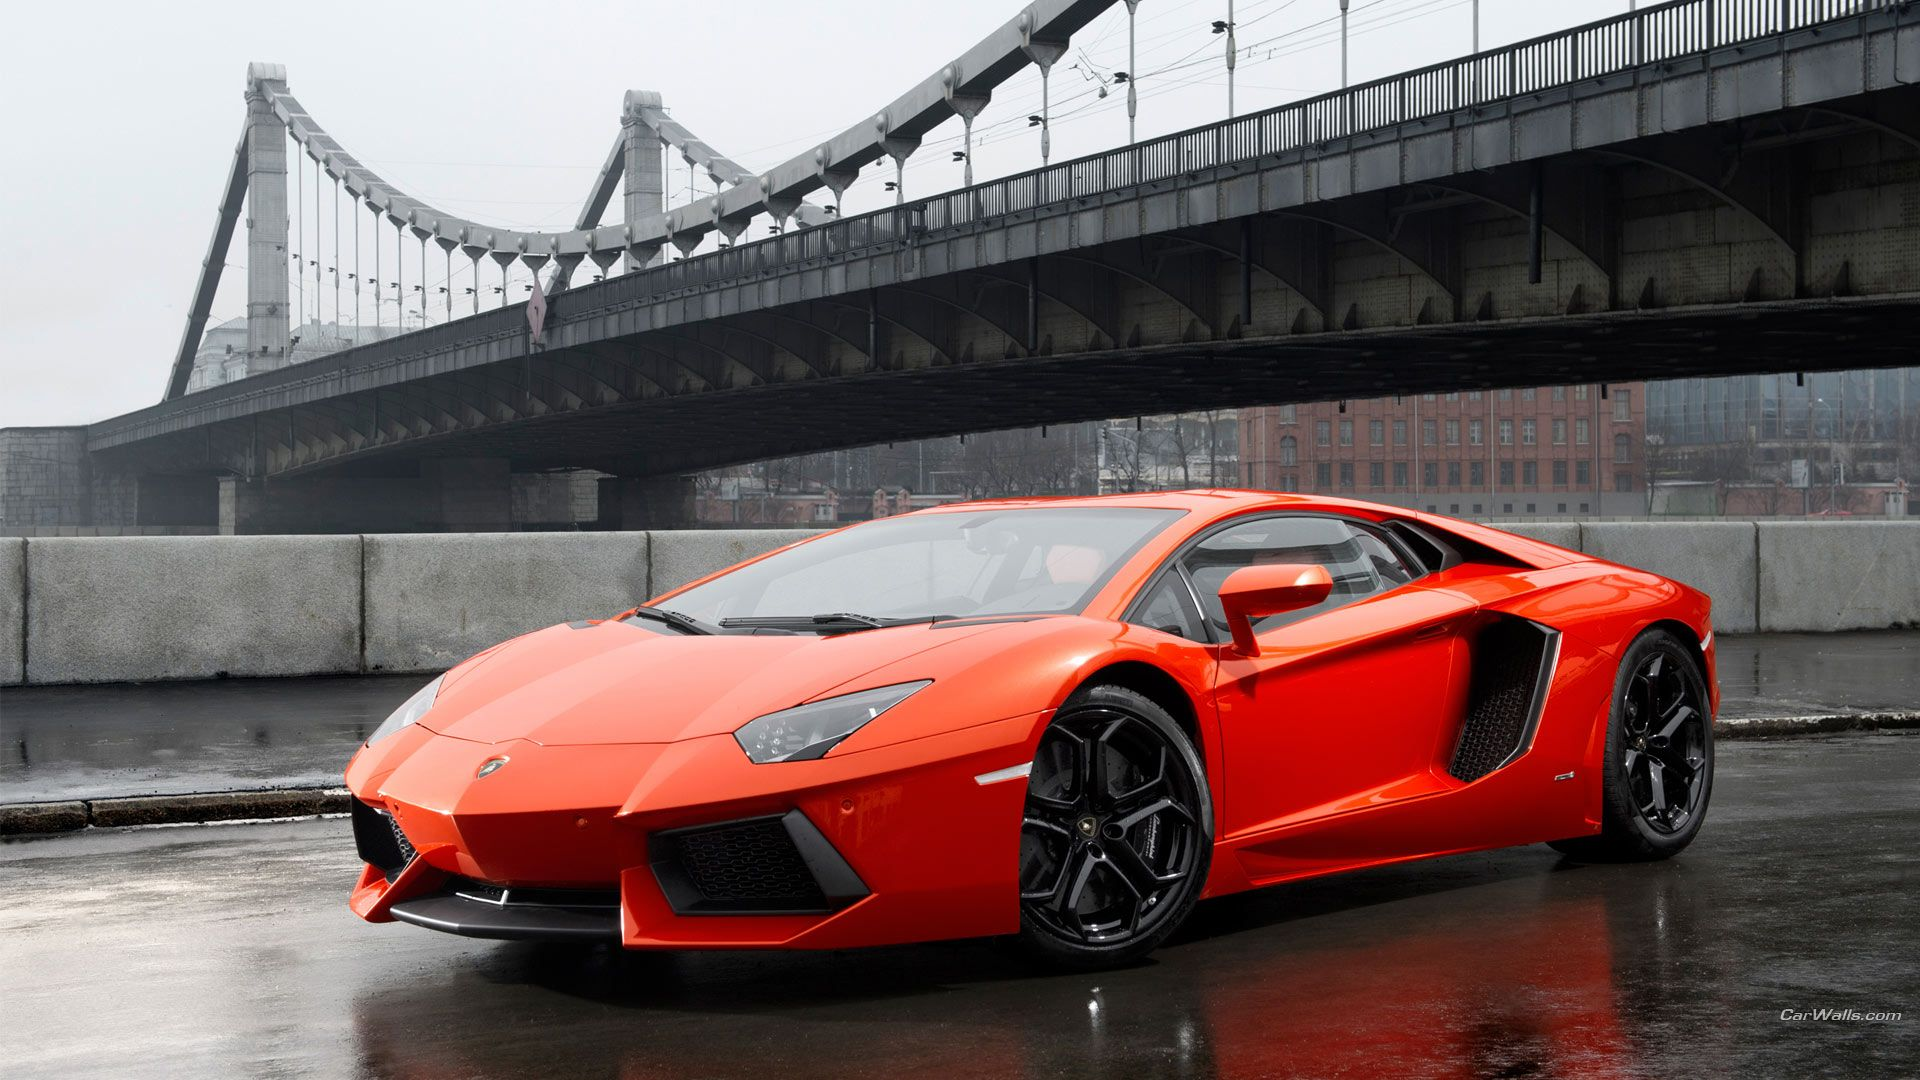 Lamborghini pictures 2012 aventador lp700 4 rabbioso - Find This Pin And More On Lamborghini By Boricarb Search Results For Aventador